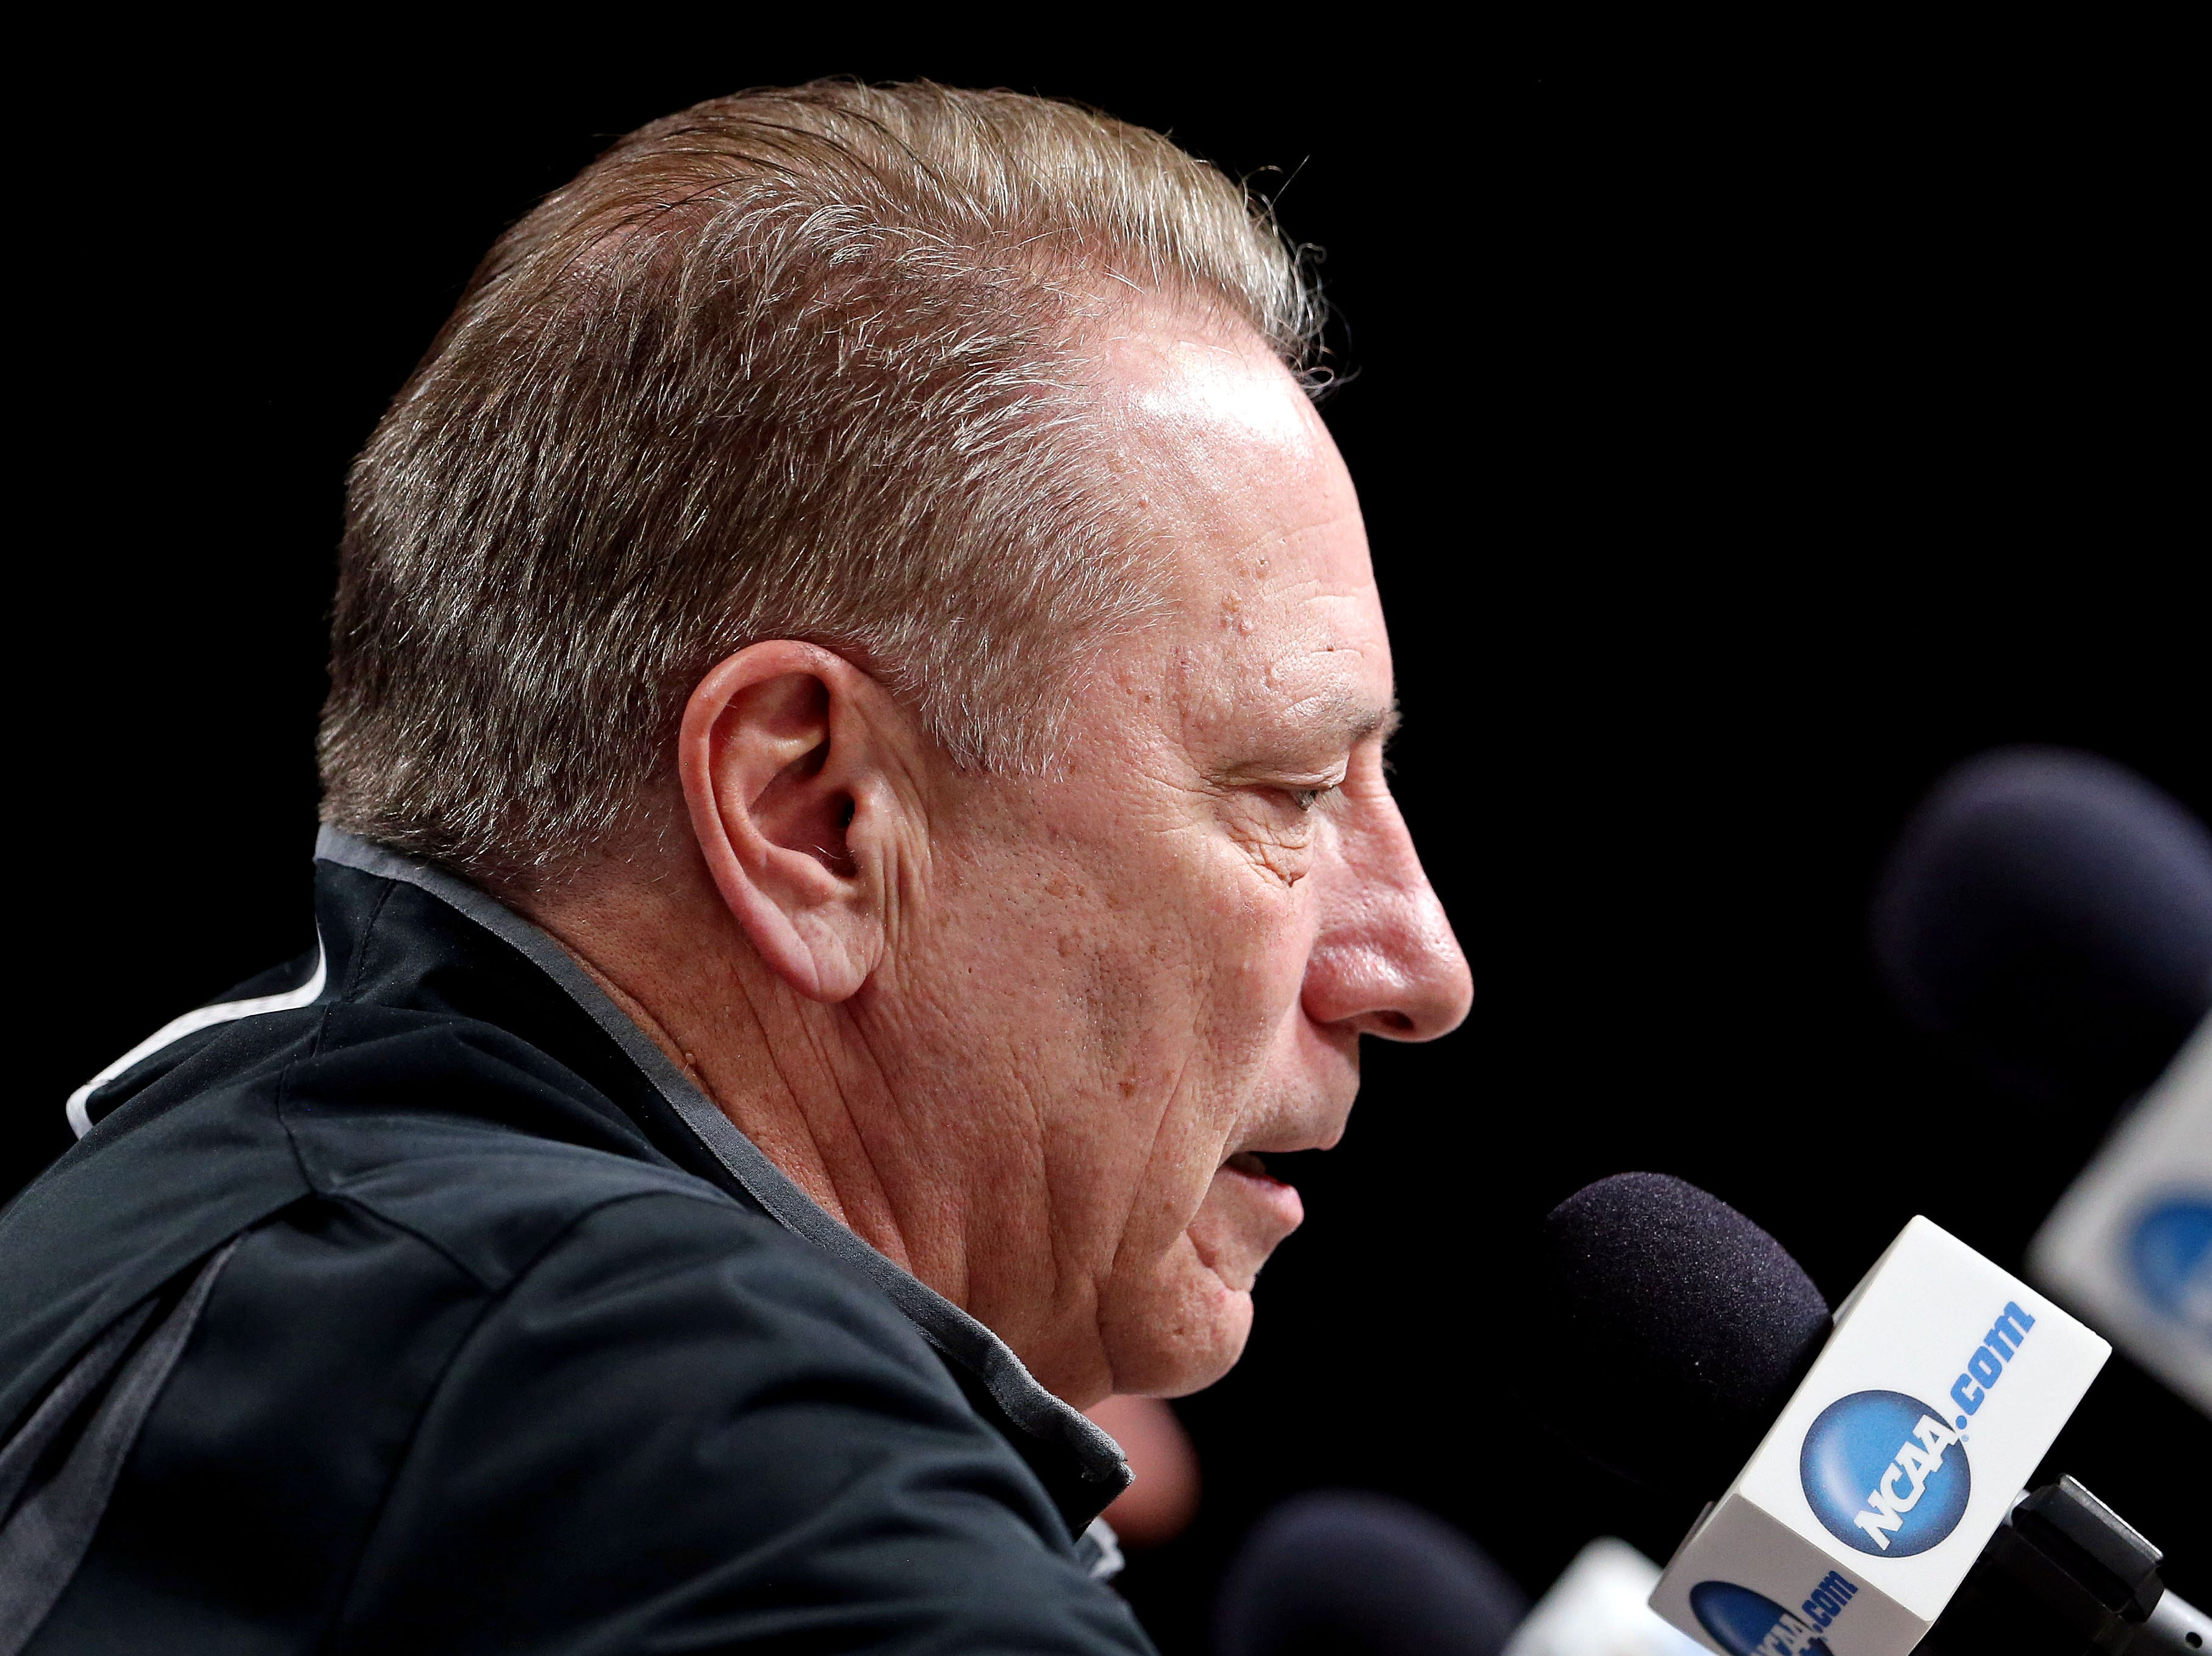 Mar 28, 2019; Washington, DC, USA; Michigan State Spartans head coach Tom Izzo speaks in a press conference during practice for the east regional of the 2019 NCAA Tournament at Capital One Arena. Mandatory Credit: Peter Casey-USA TODAY Sports